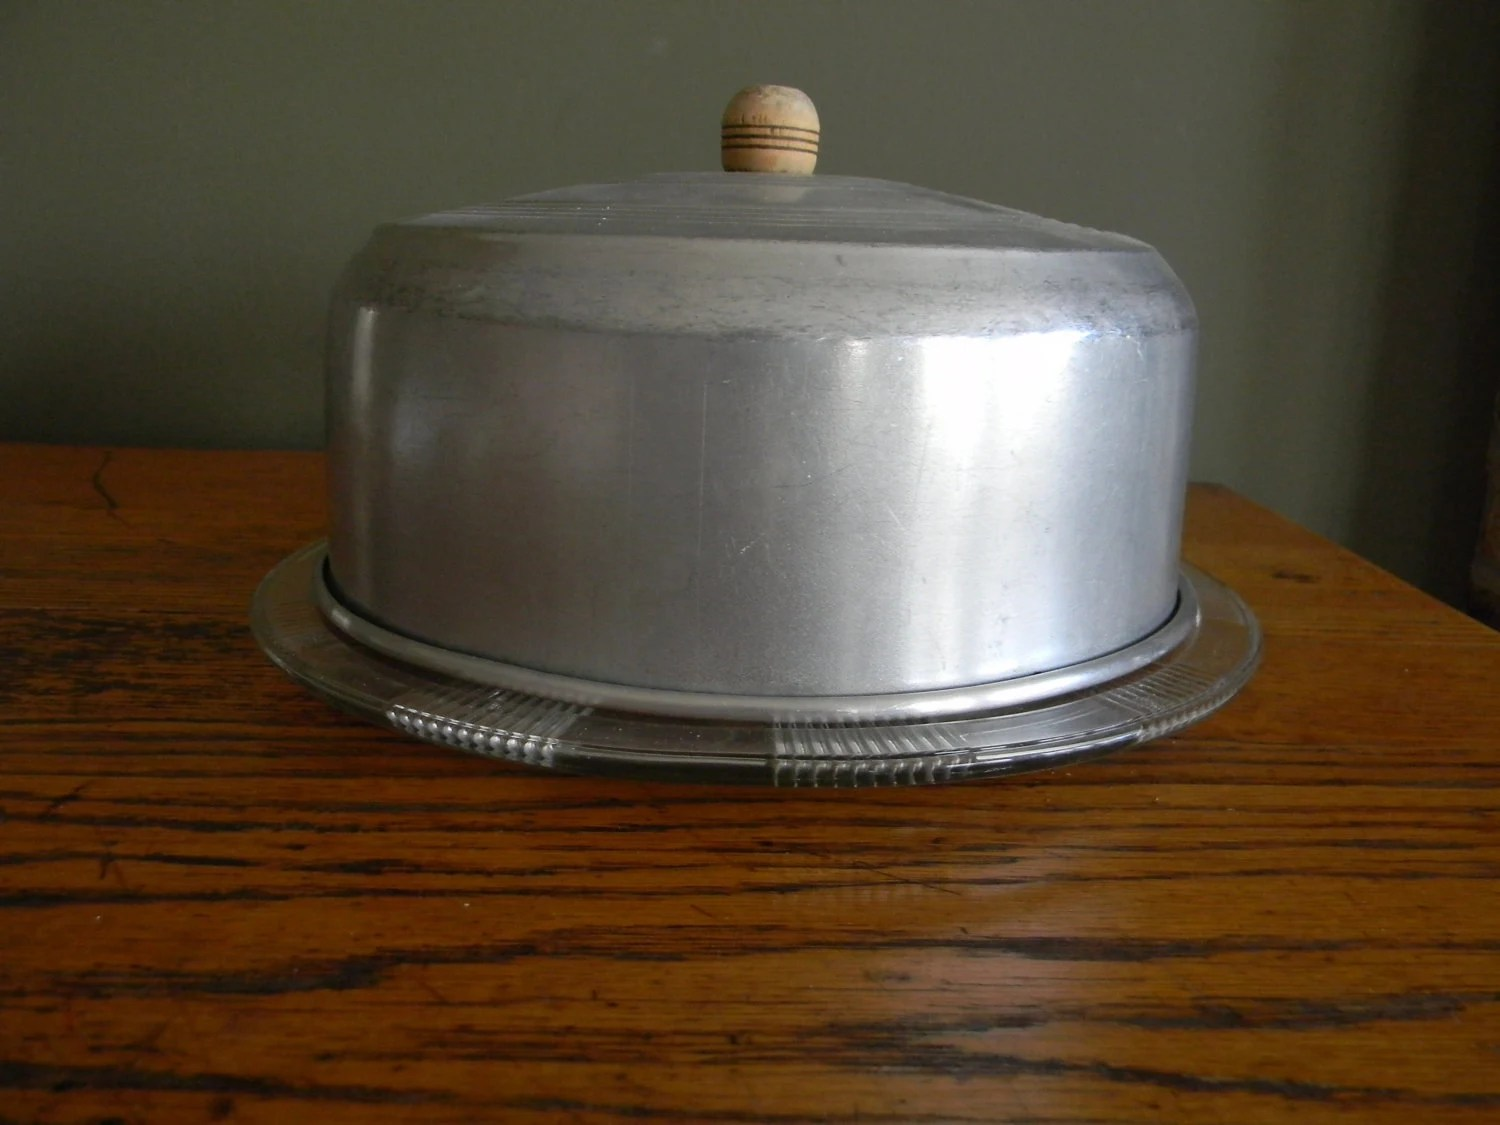 Cake Carrier Cake Taker Farmhouse Chic Vintage Metal And Glass